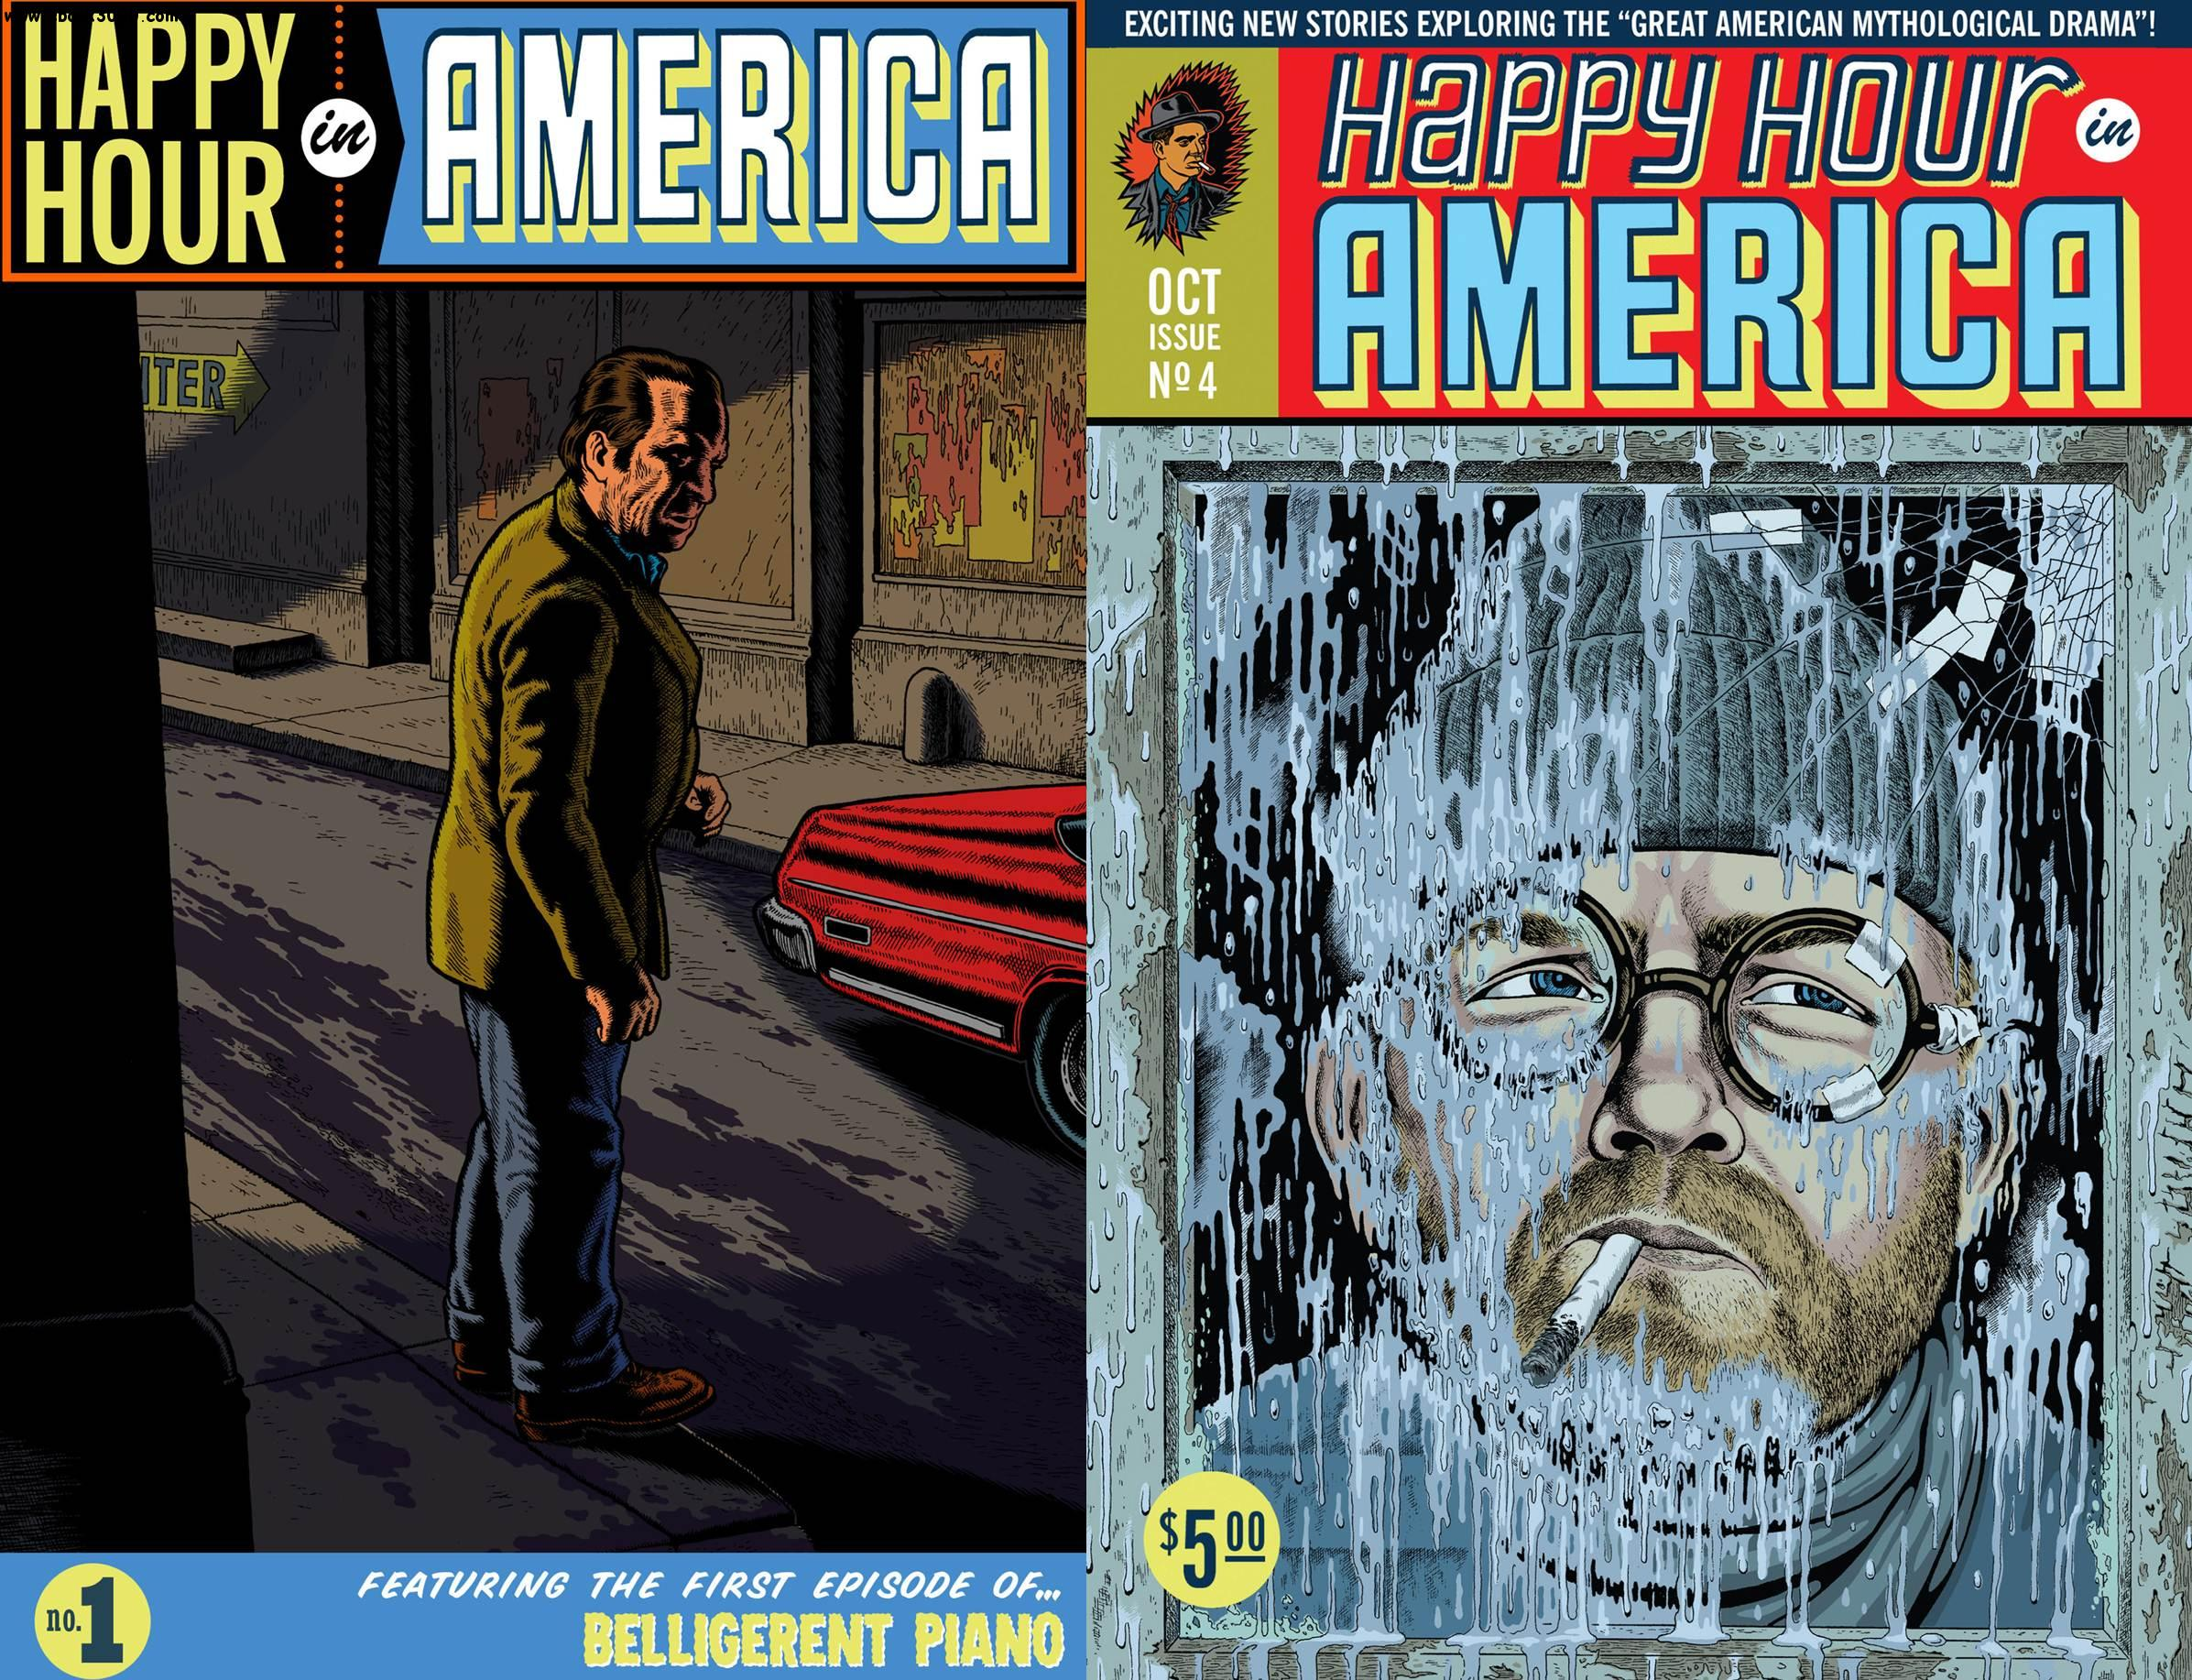 Happy Hour in America #1-4 (2003-2012) free download